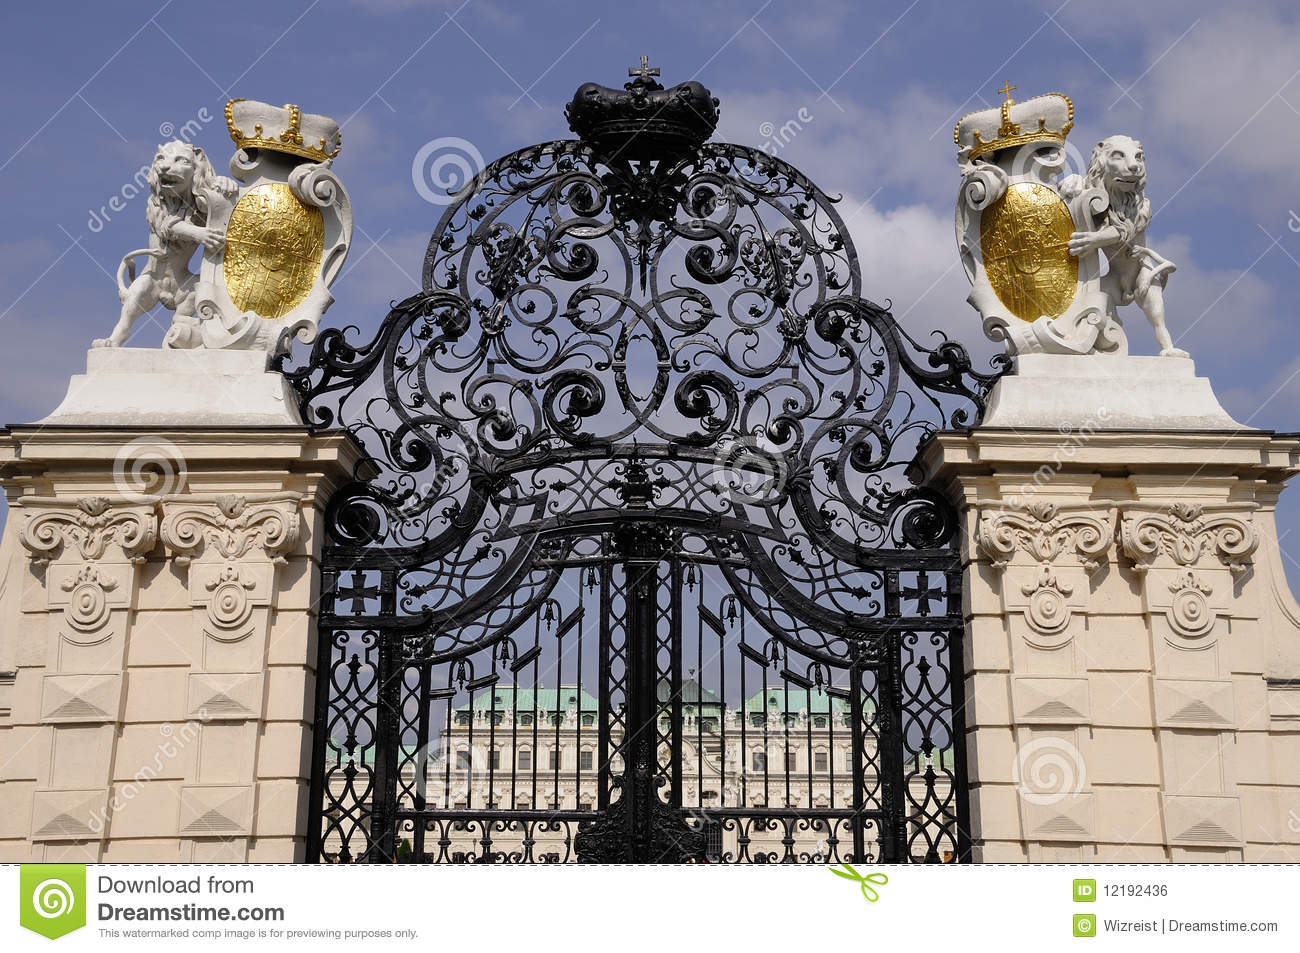 guarded entrance to belvedere palace stock photo image of symbol